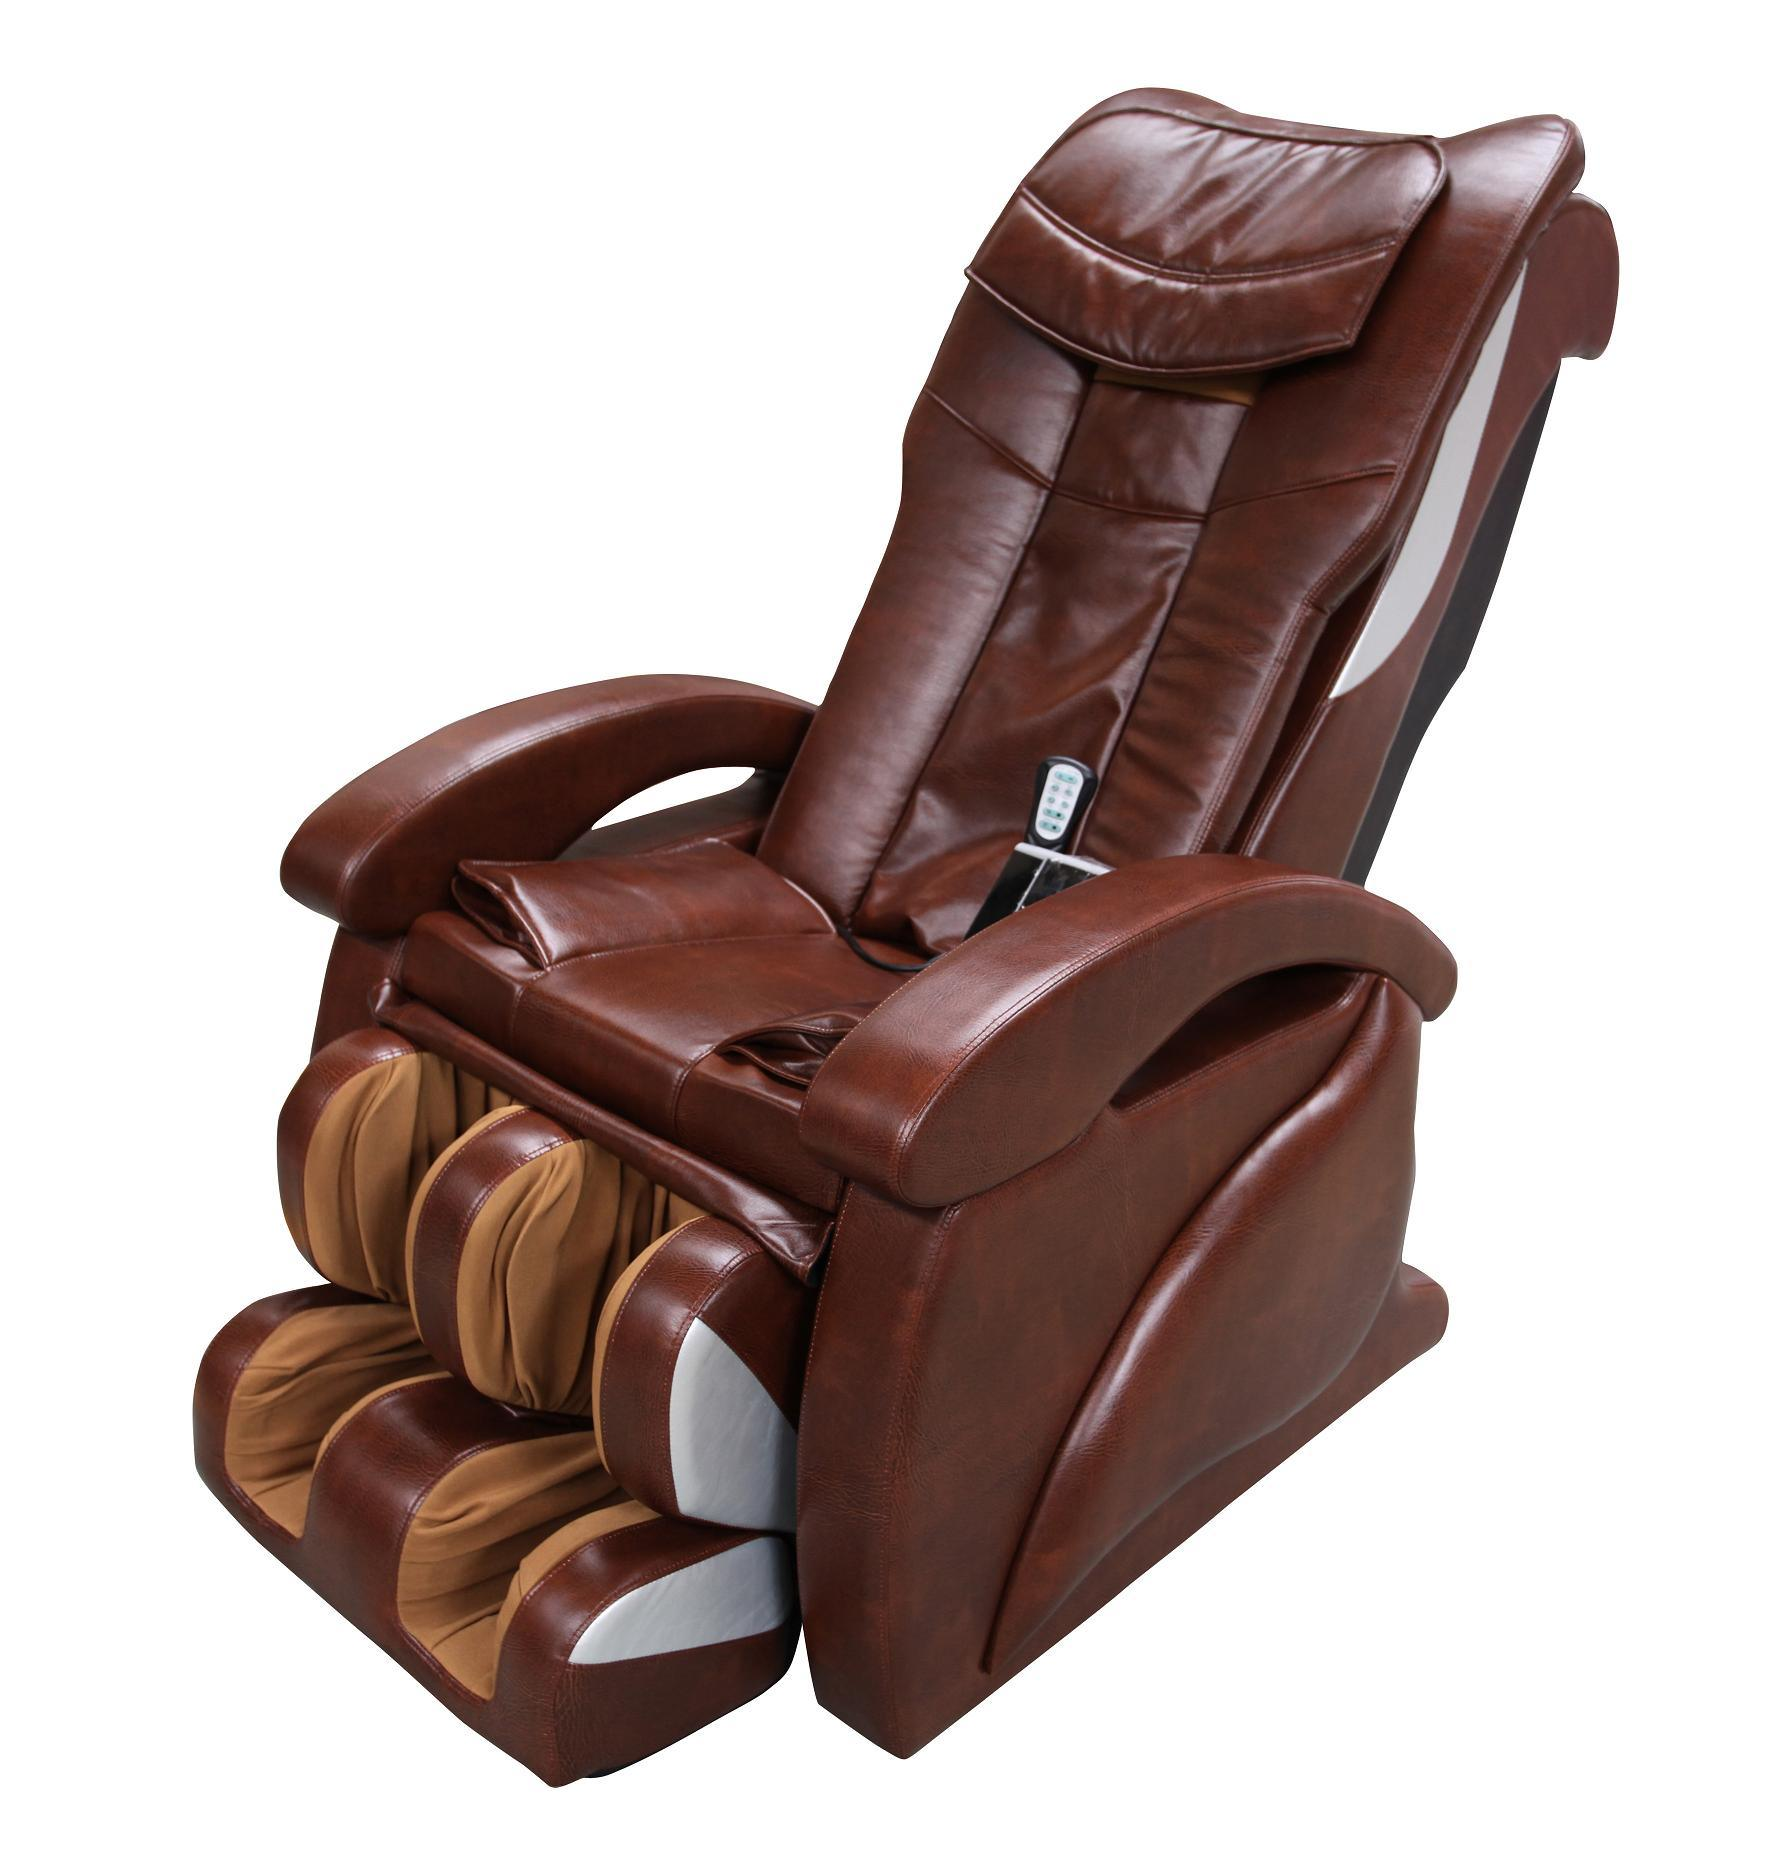 electrical massage chair